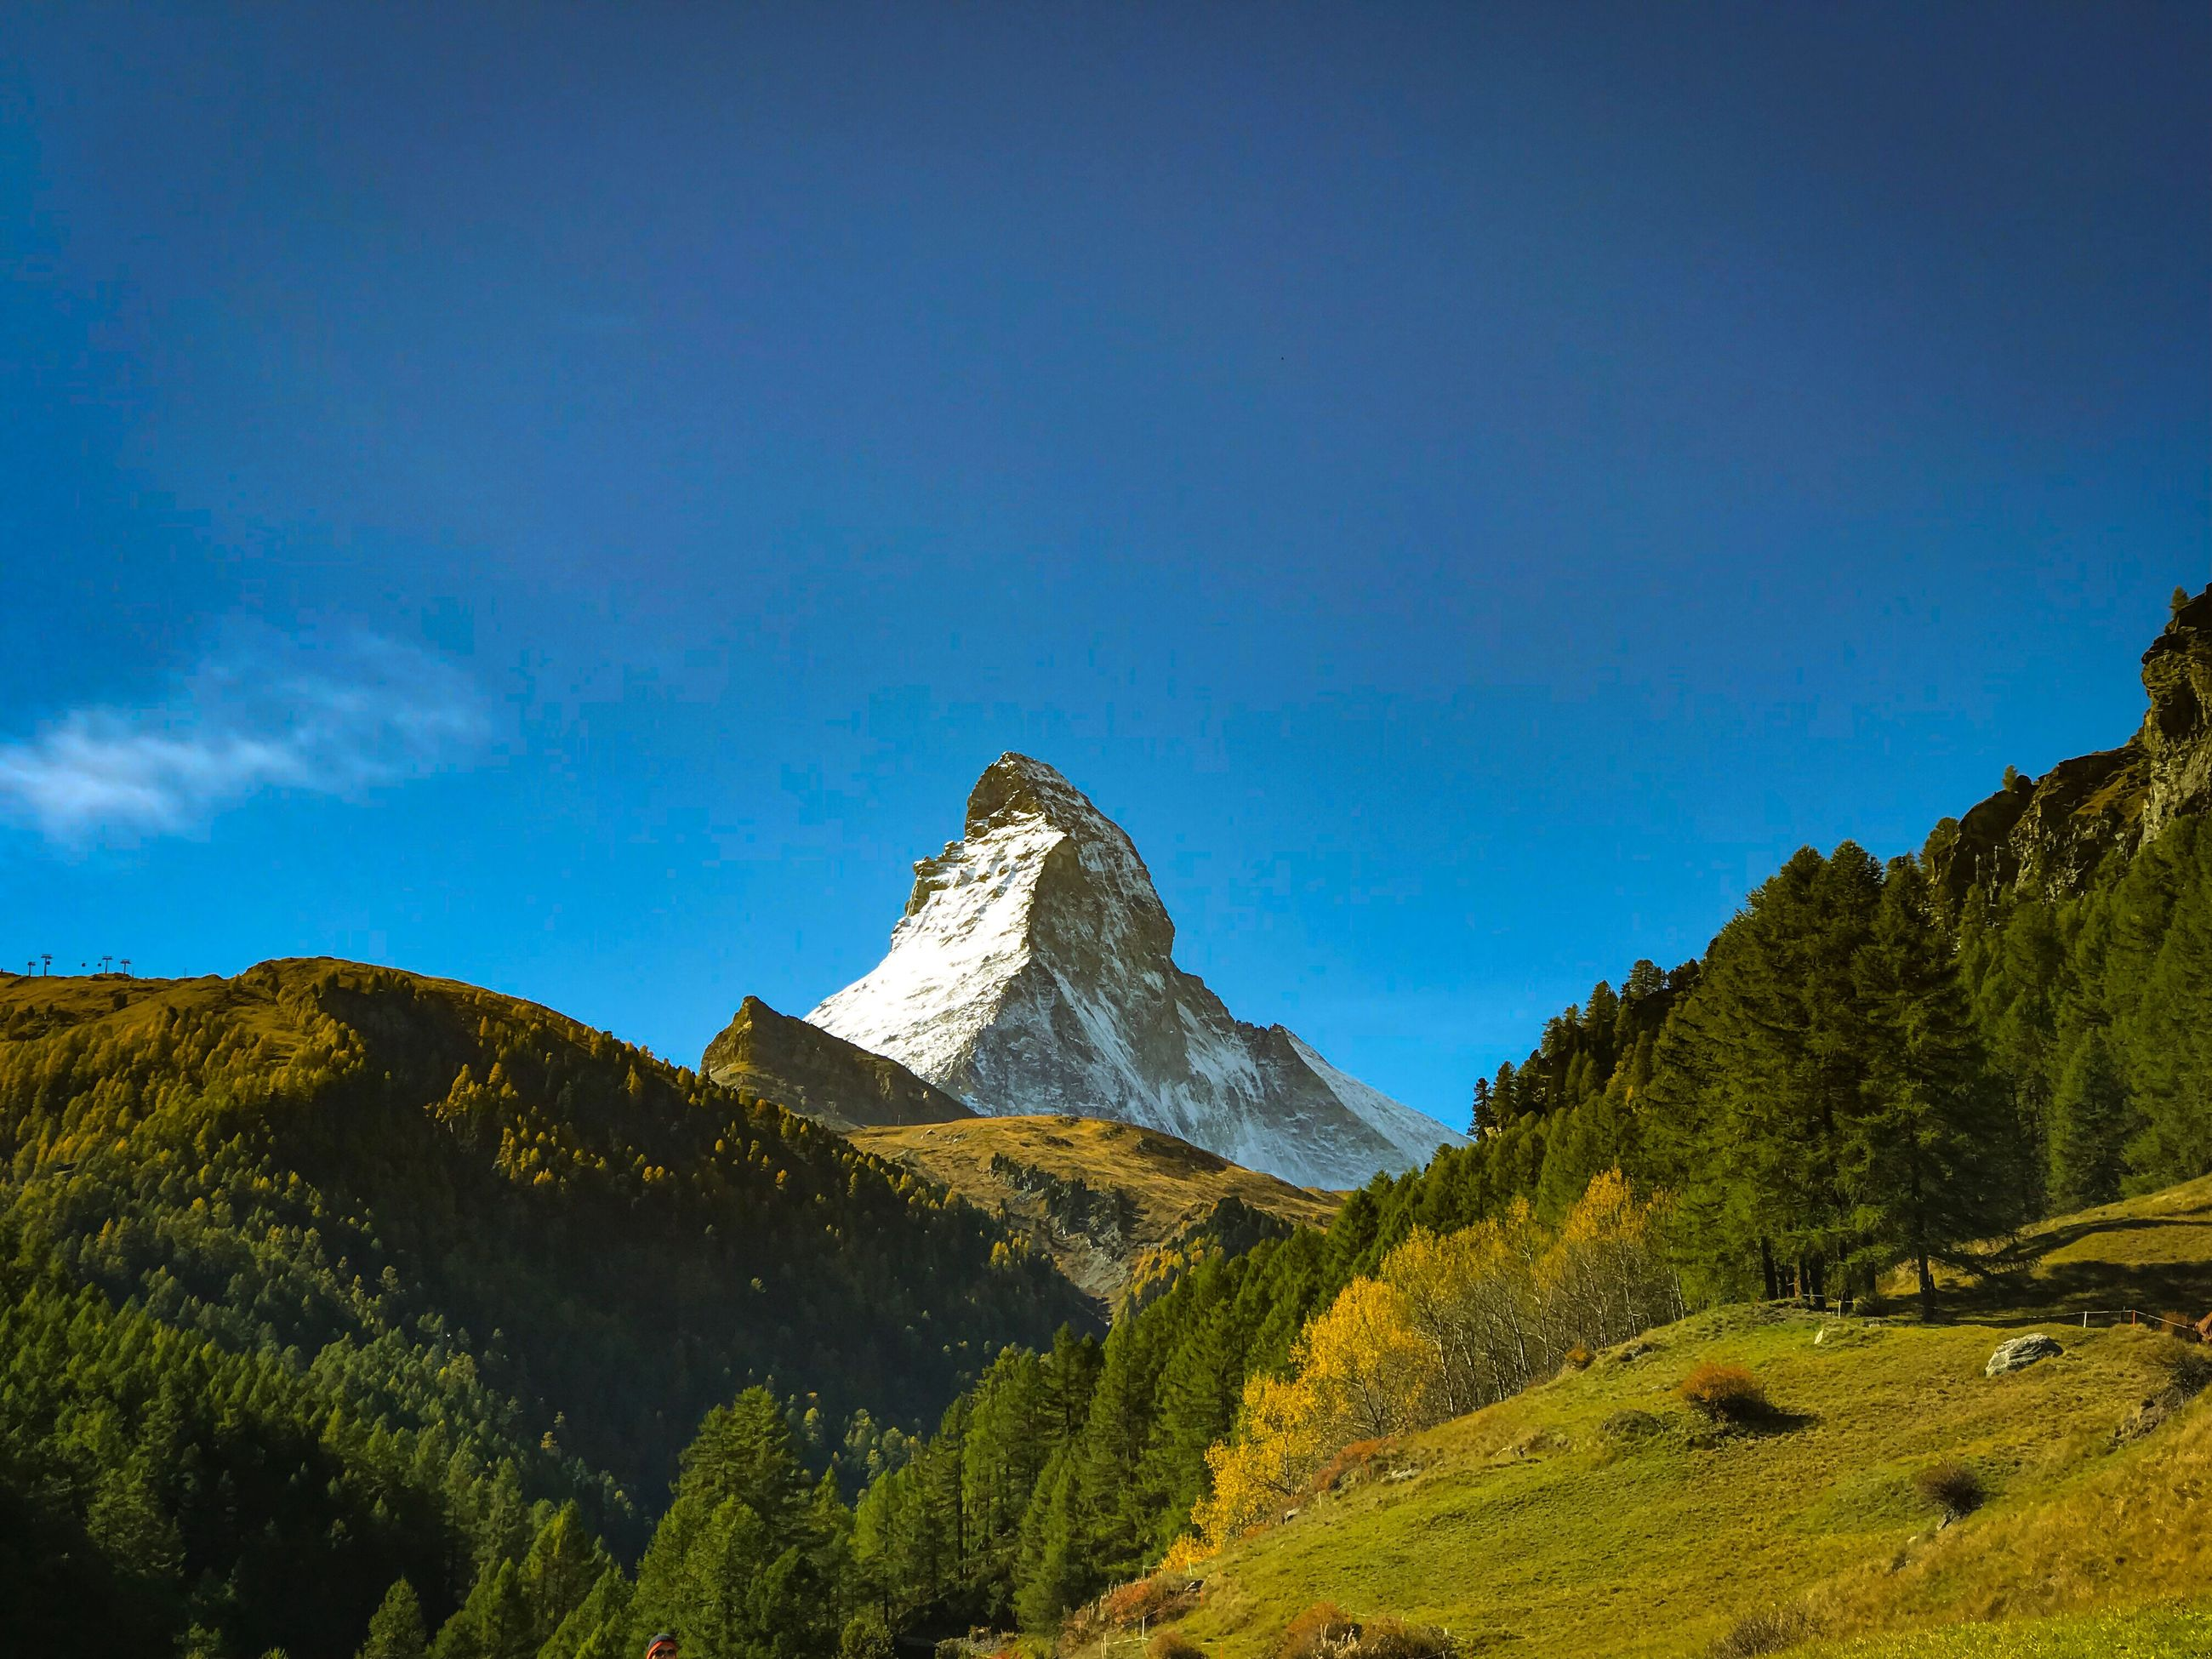 mountain, nature, scenics, beauty in nature, mountain range, blue, tranquility, tranquil scene, no people, day, peak, clear sky, outdoors, sky, range